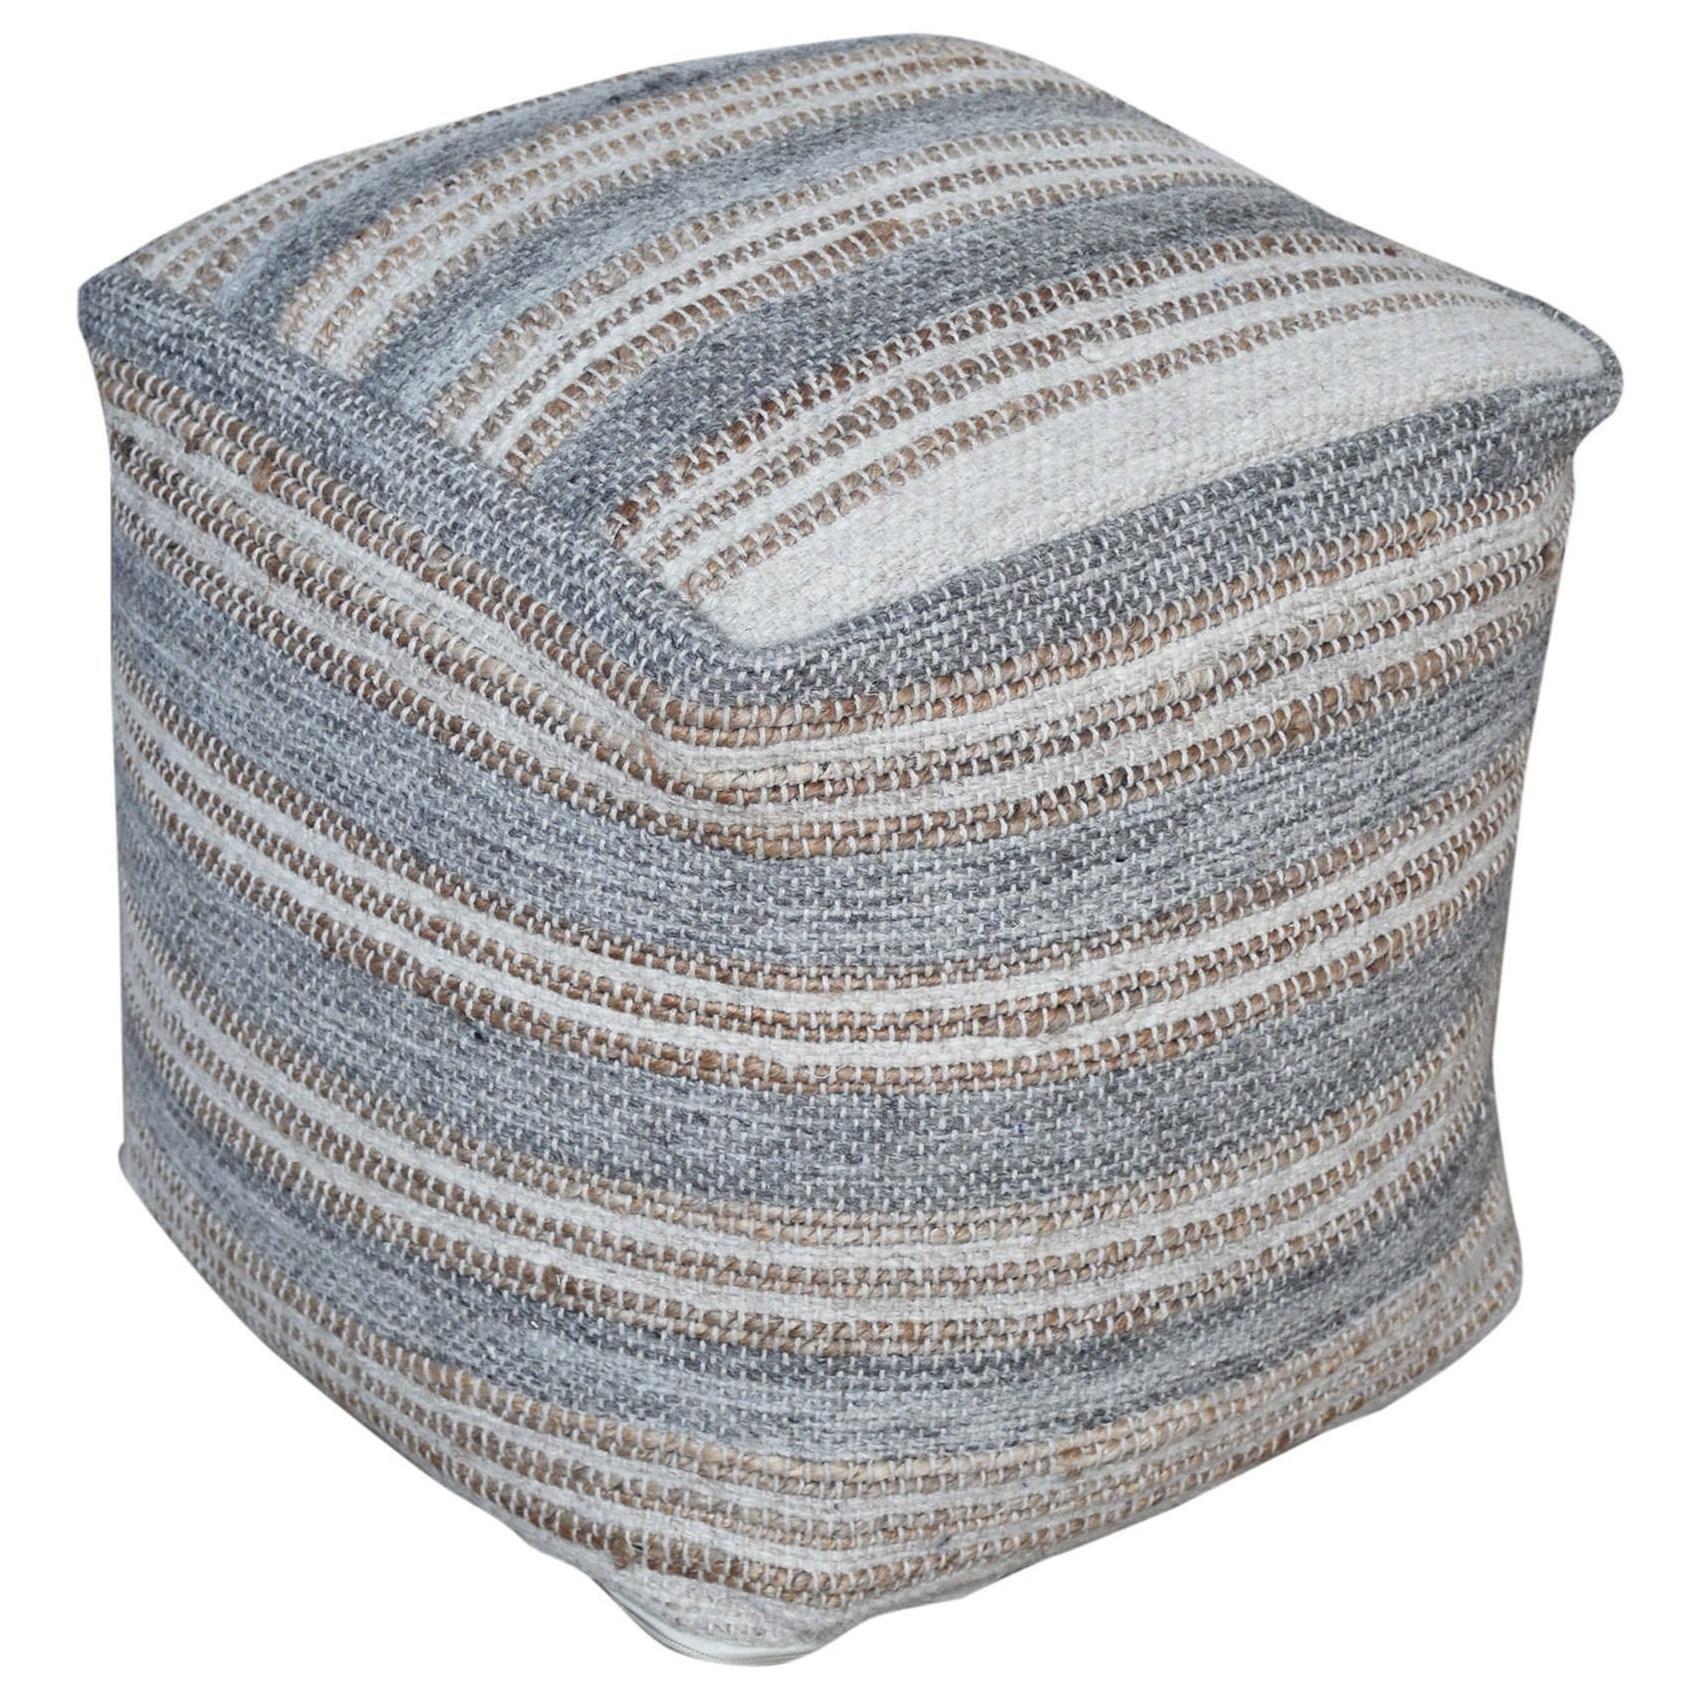 Accent Furniture - Ottomans Mesick Handwoven Gray Pouf by Uttermost at Suburban Furniture